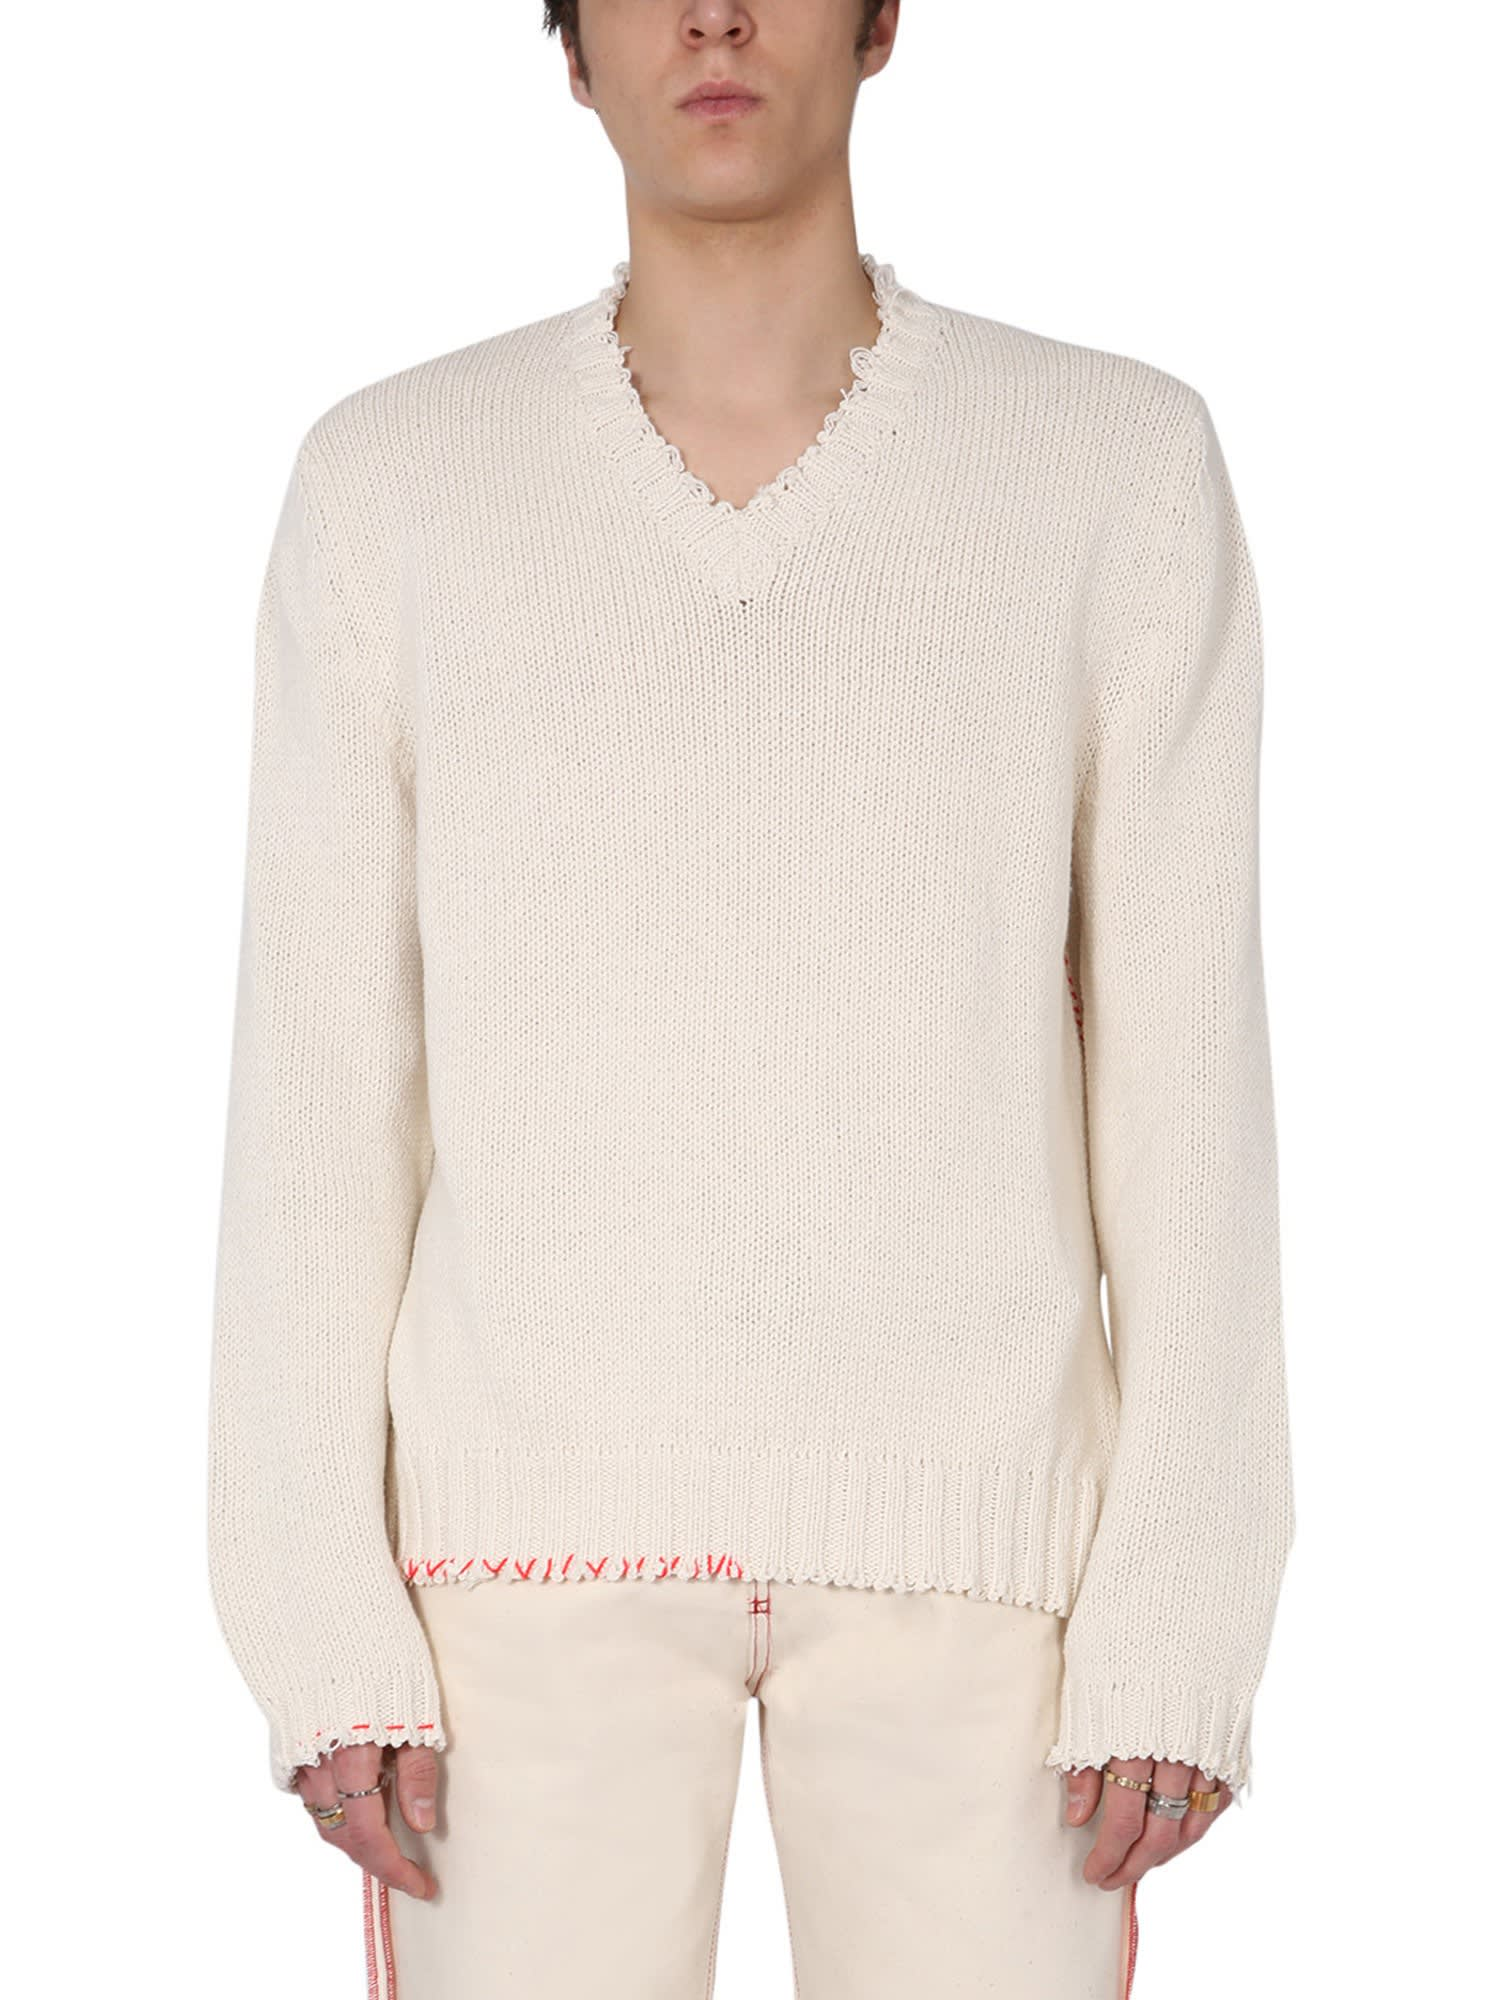 Maison Margiela DESTROYED SWEATER